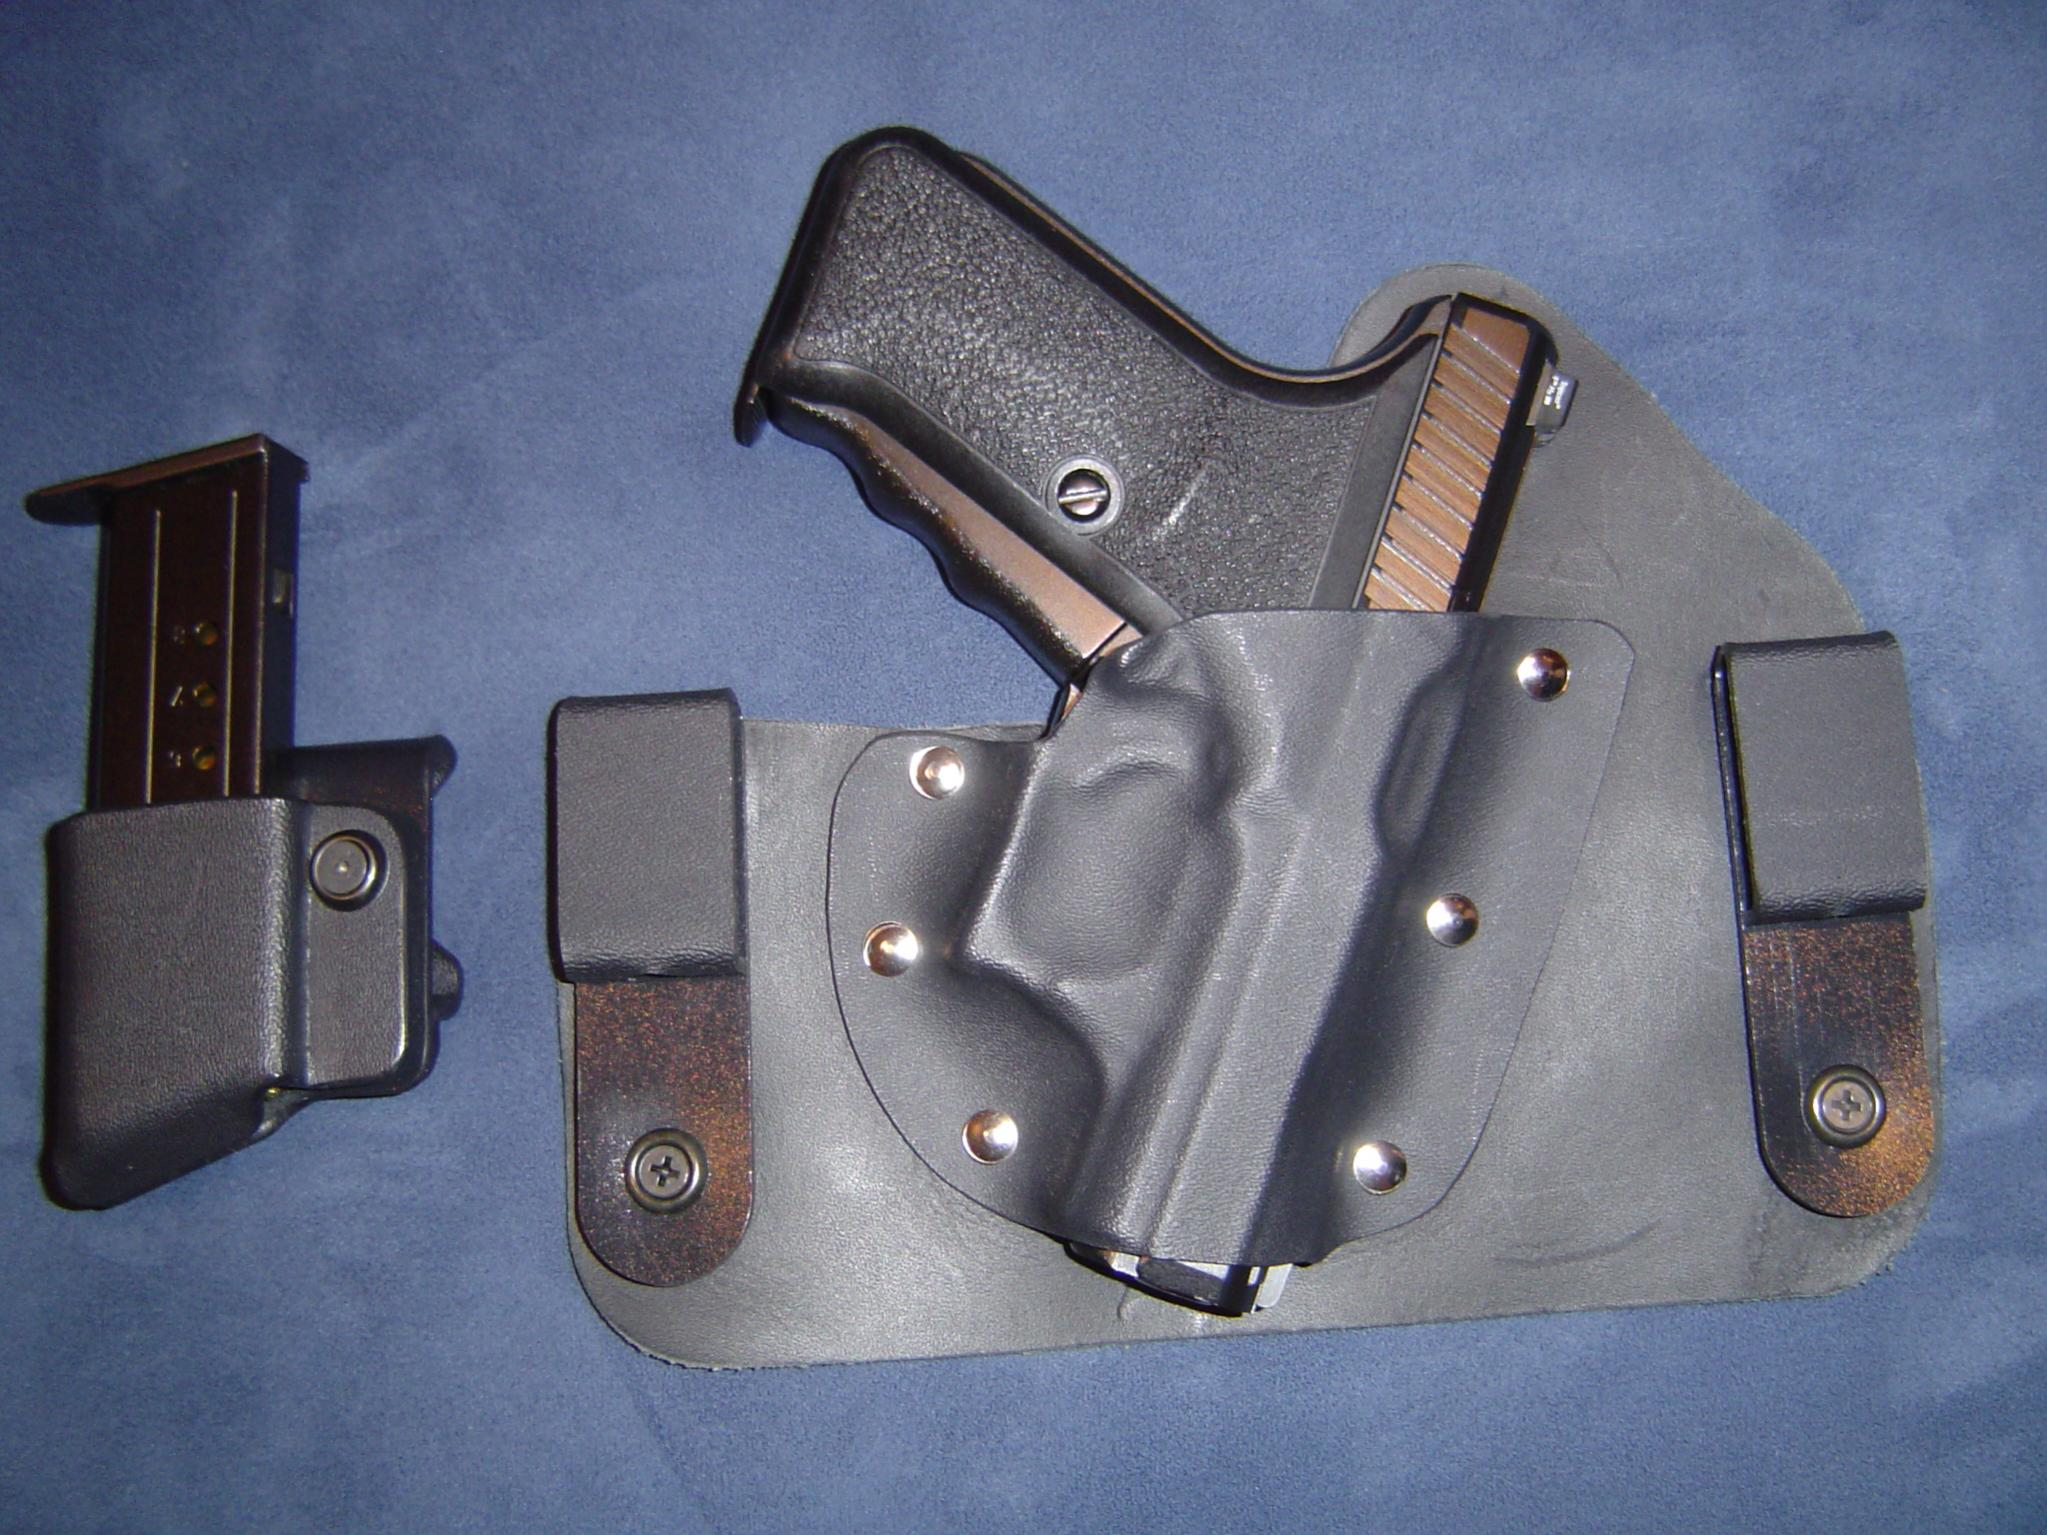 Theis Holster - Another Hybrid that works!-dsc00183.jpg